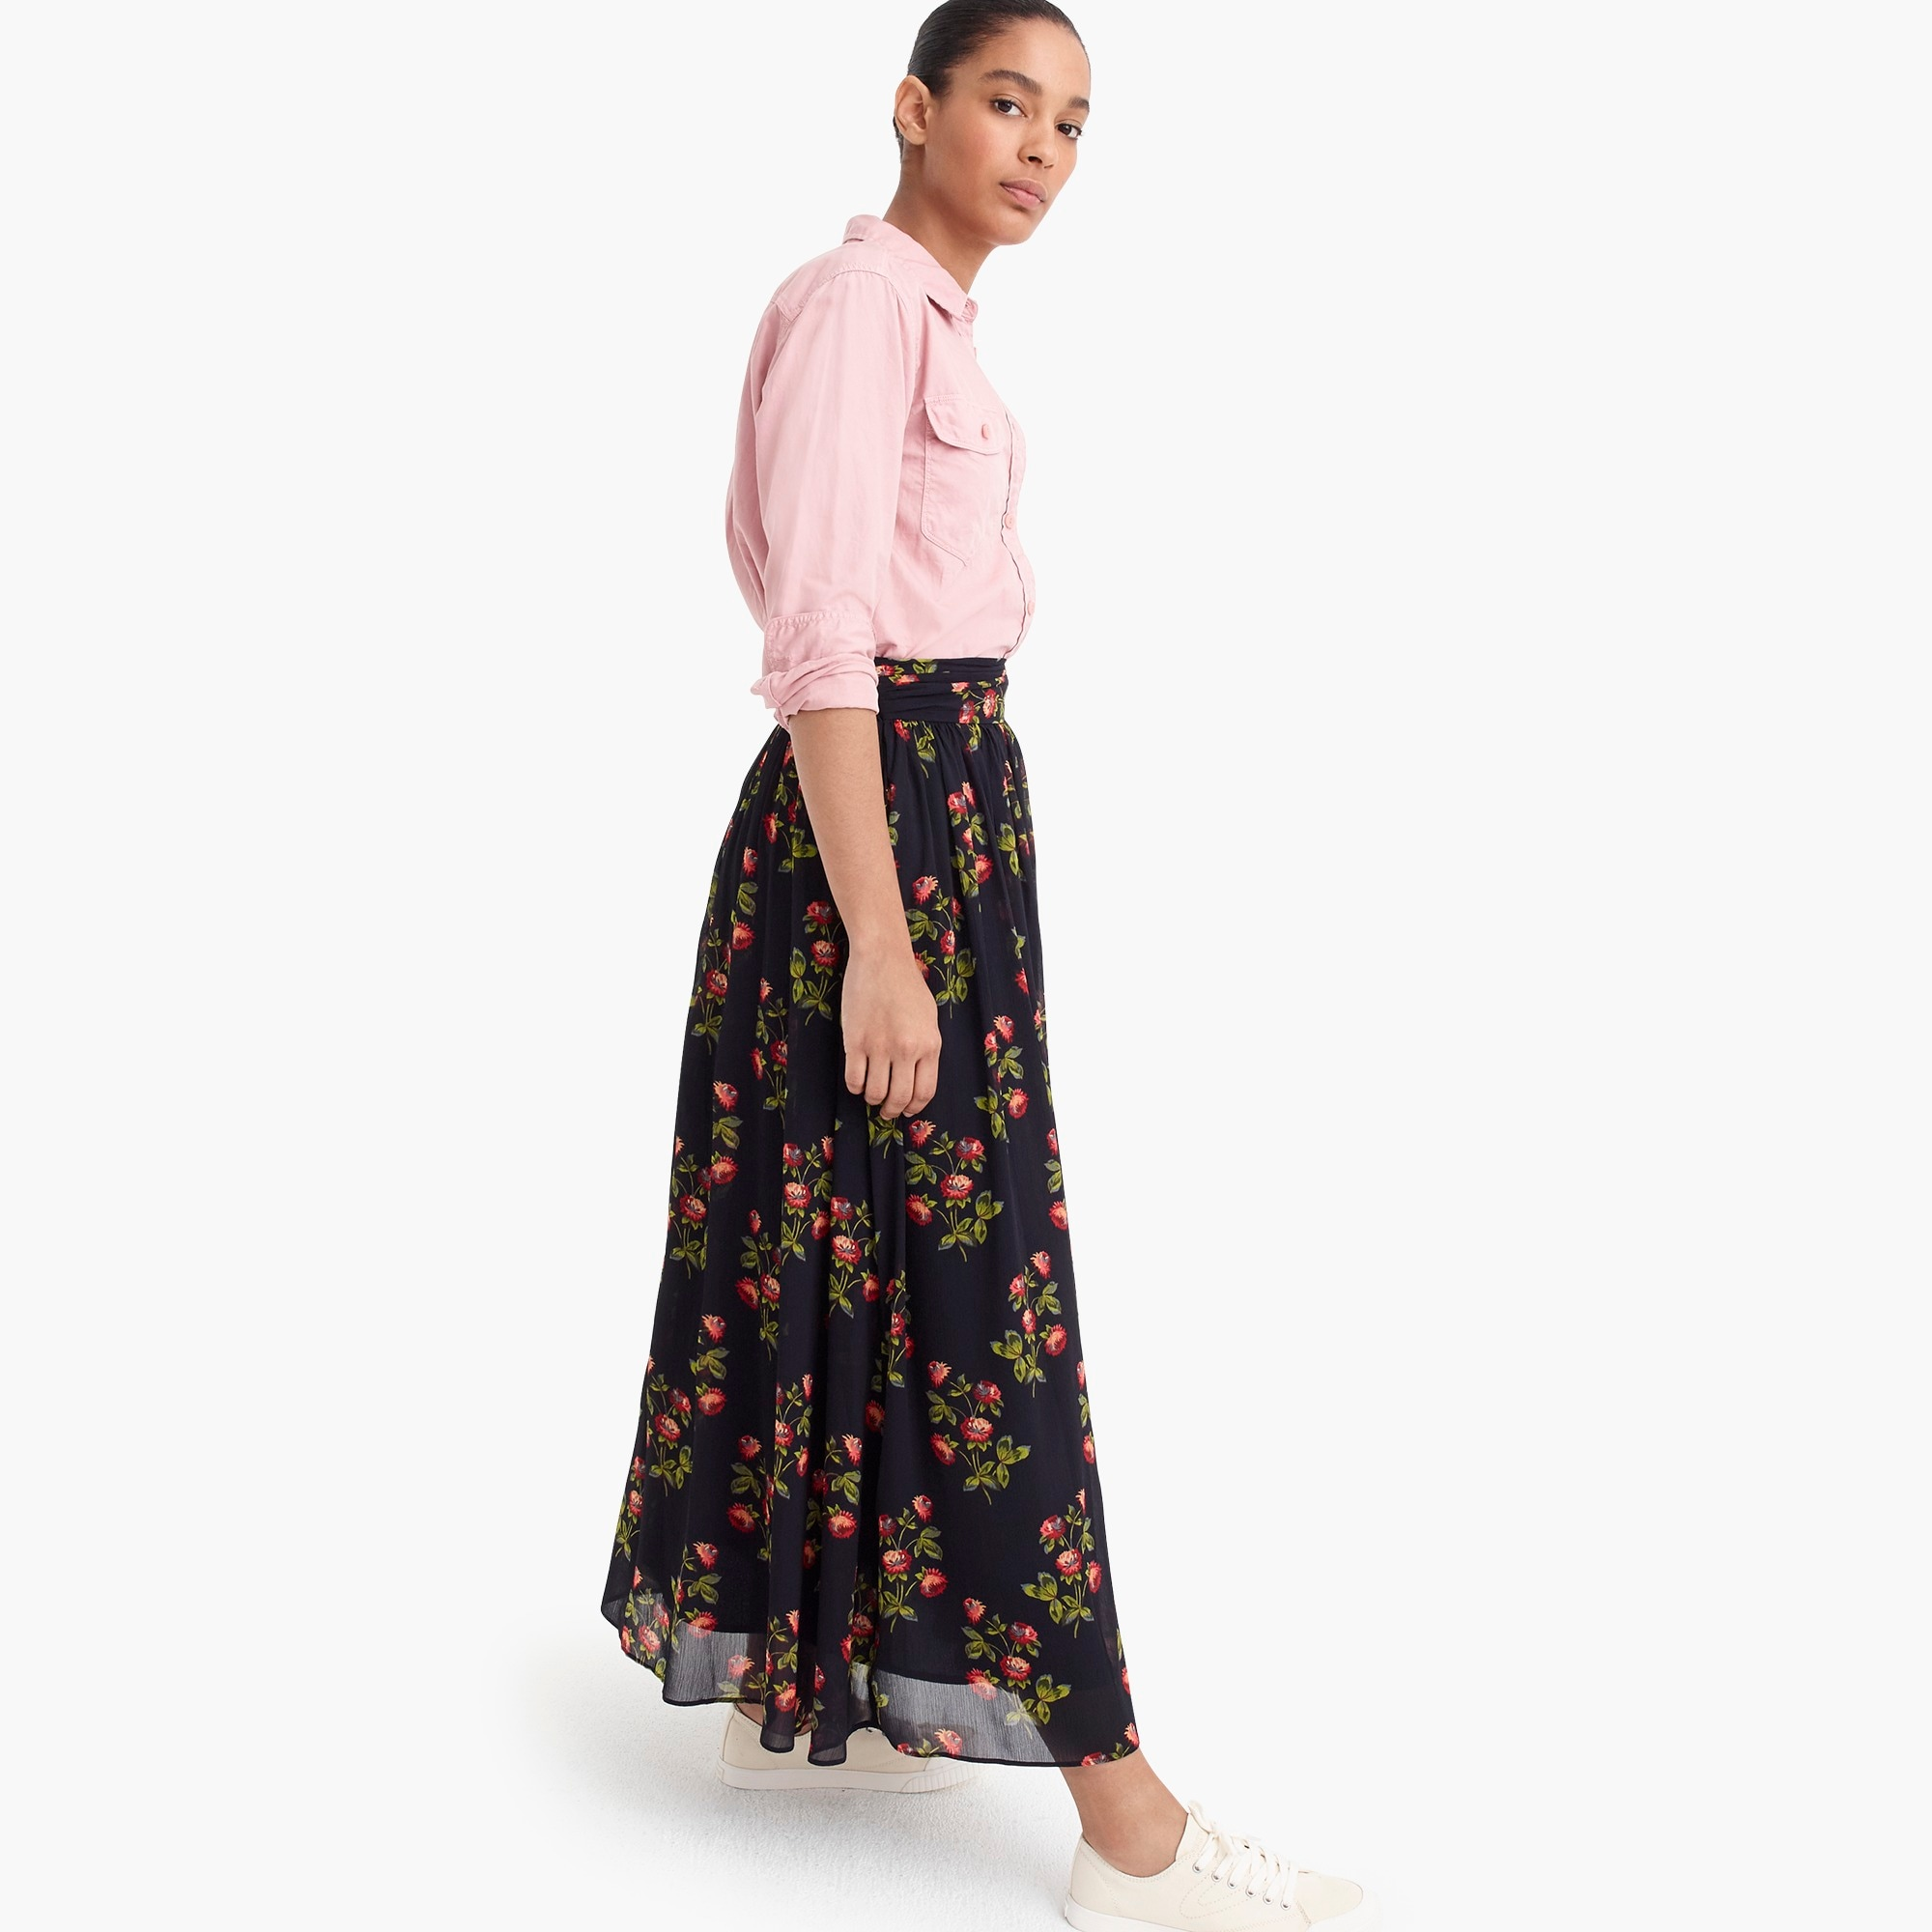 Image 5 for Petite Point Sur floral maxi skirt in crinkle chiffon